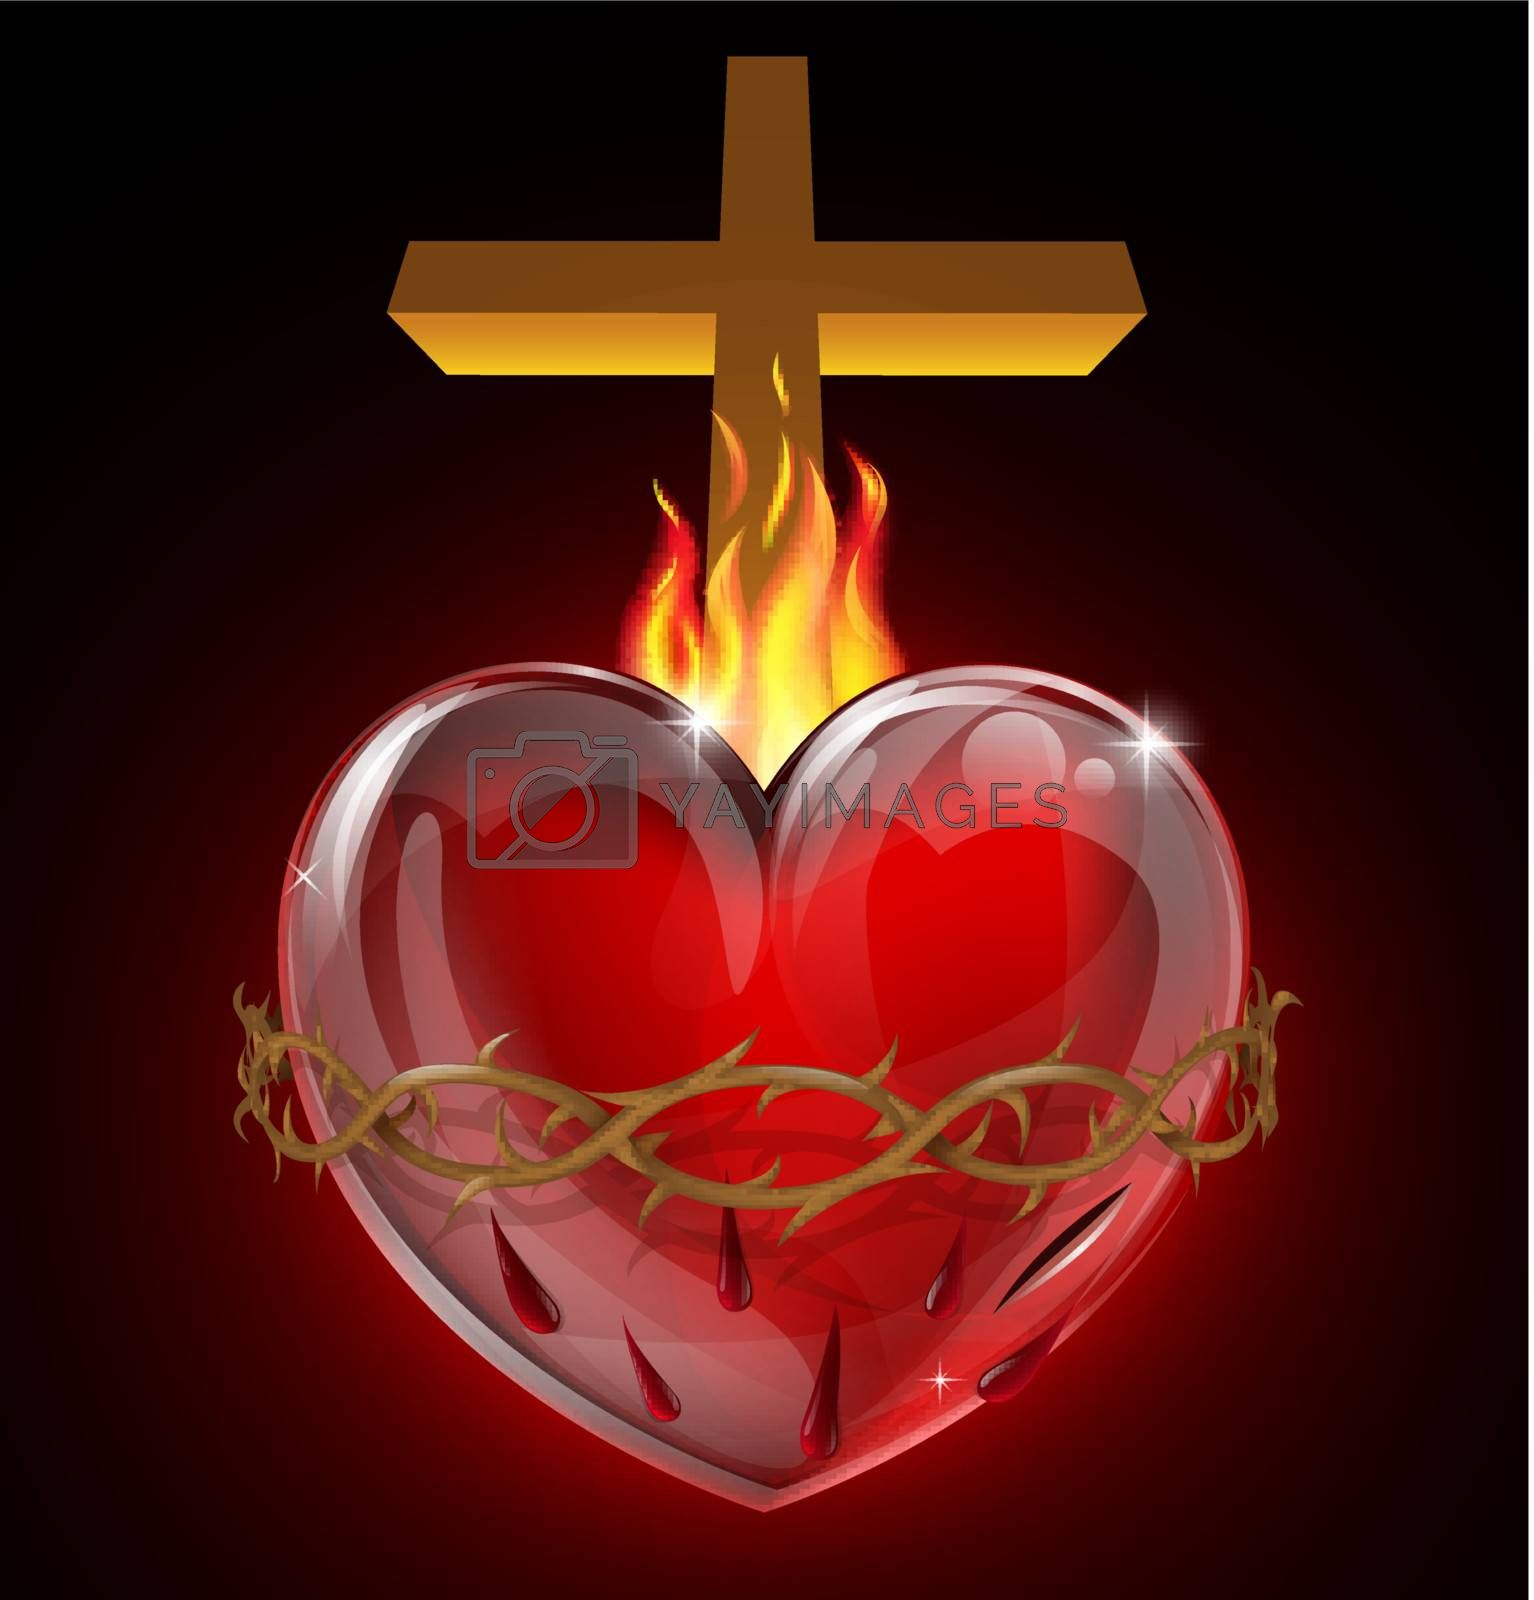 Illustration of the Most Sacred Heart of Jesus. A bleeding heart with flames, pierced by a lance wound with crown of thorns and cross.